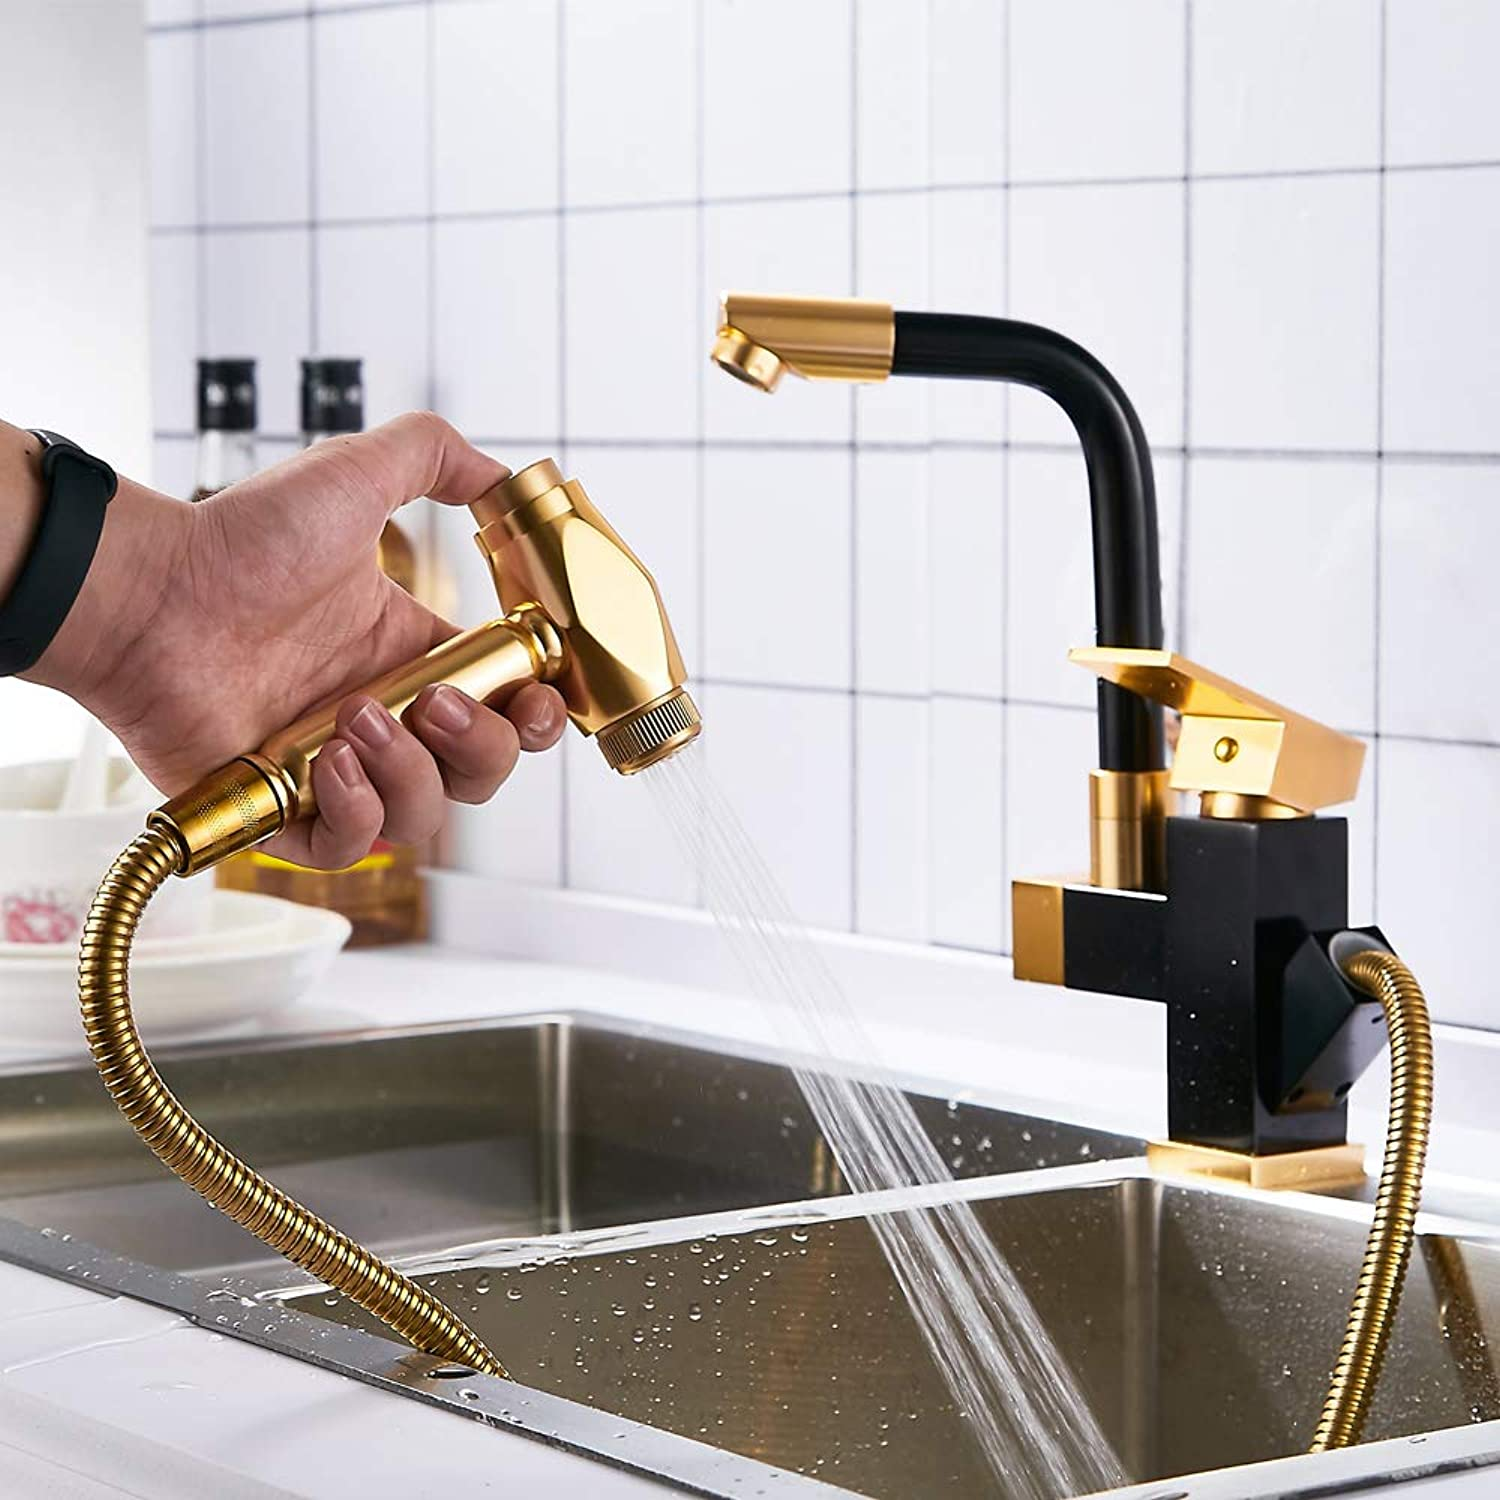 Kitchen Sink Faucet Multifunction Single Handle Dual Mode High Arc Brushed Nickel Pull Out Commercial Lead Free Single Handle Pull Down tap